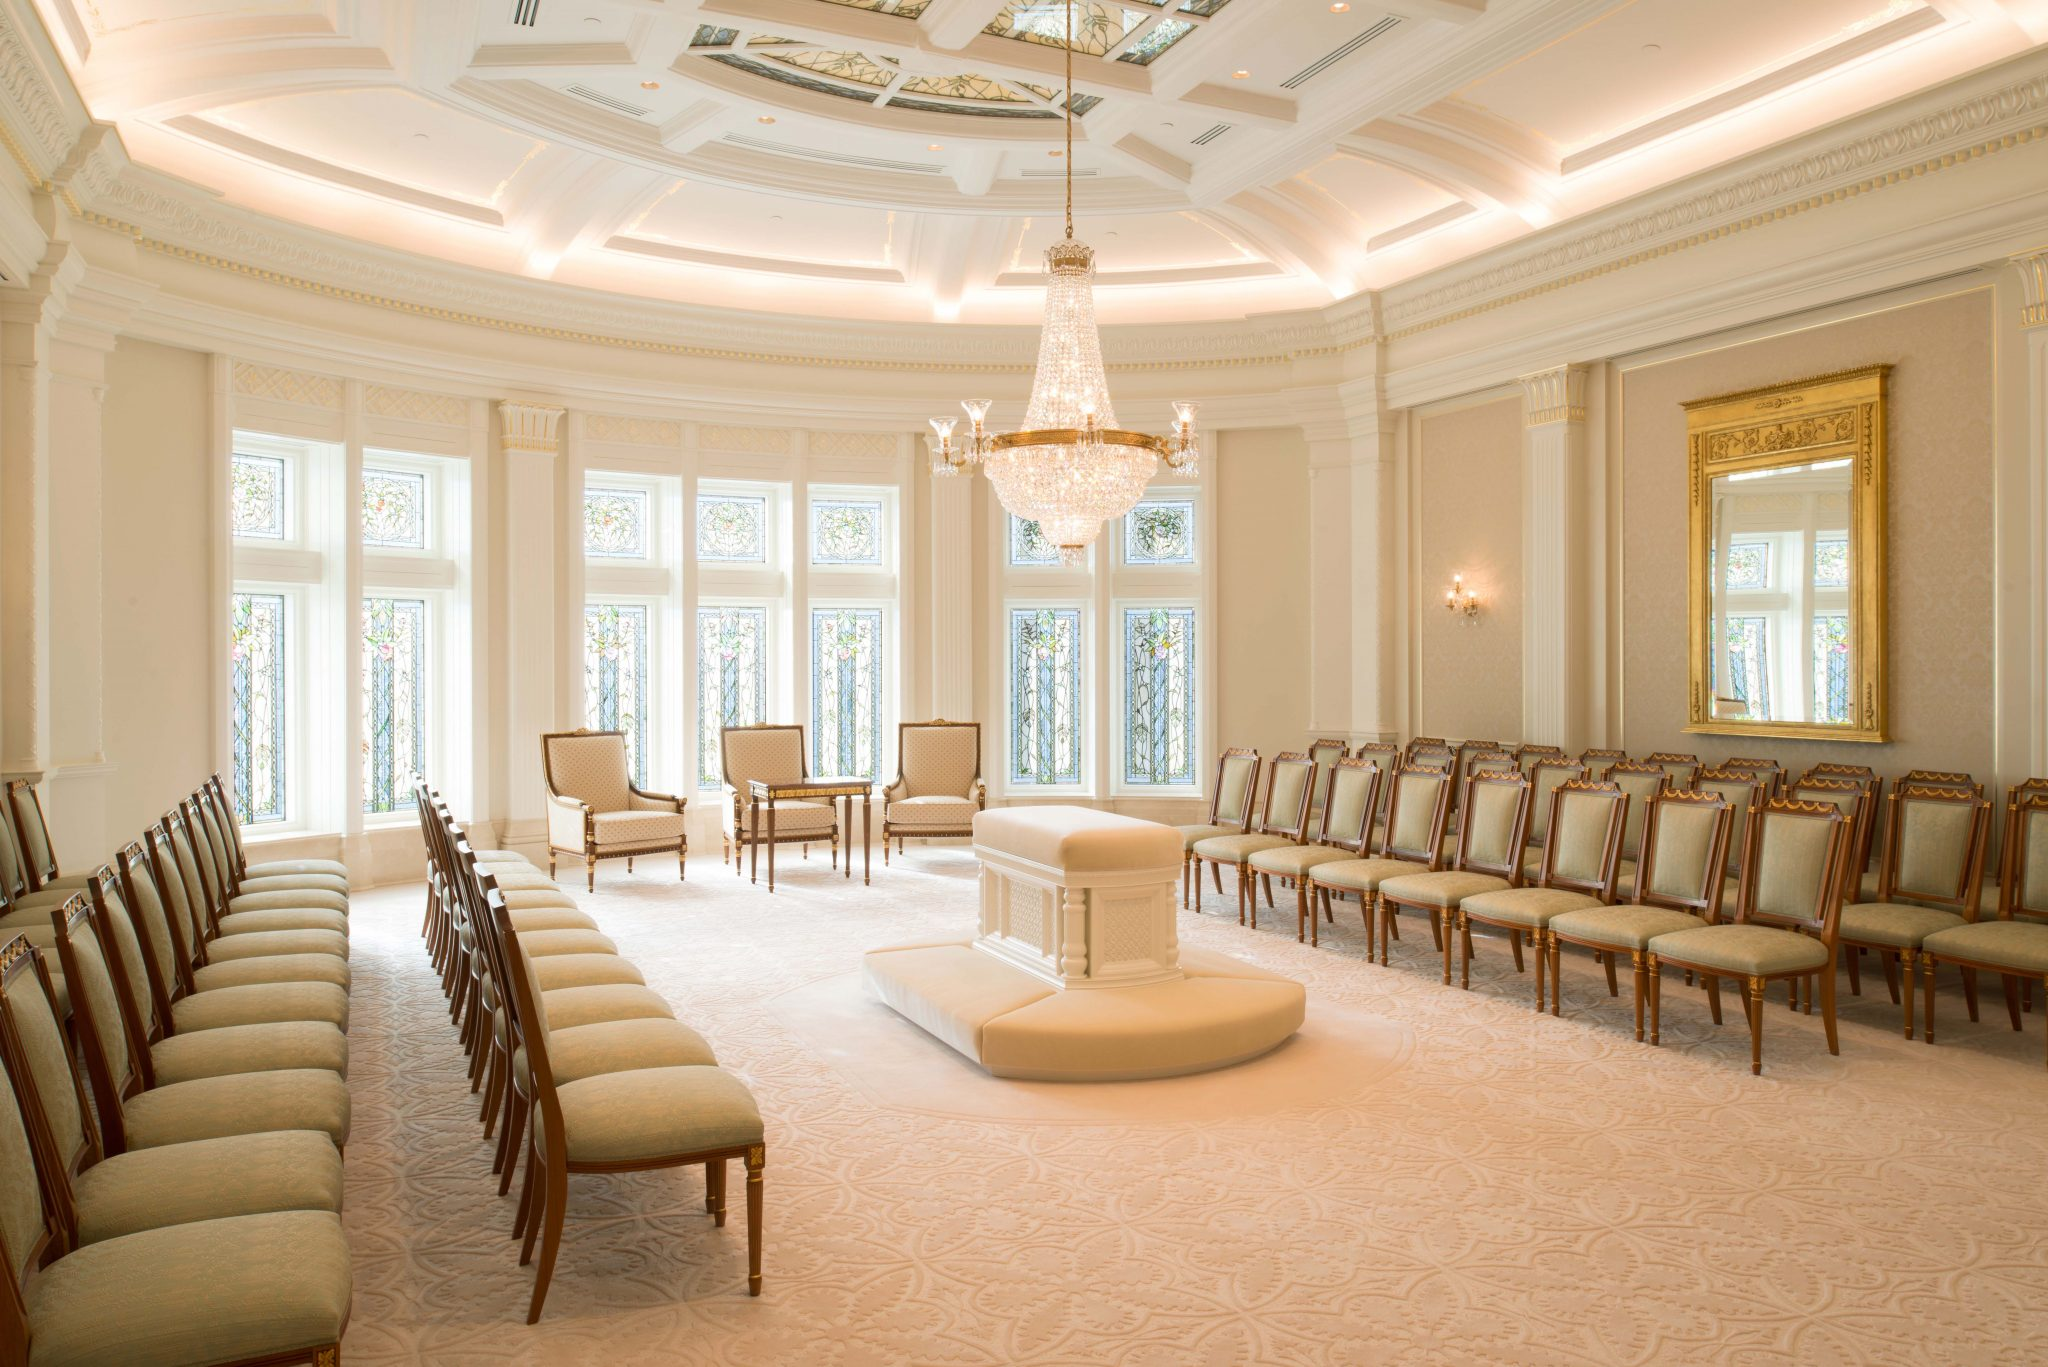 Photos First Look Inside The Payson Utah Temple Lds Daily